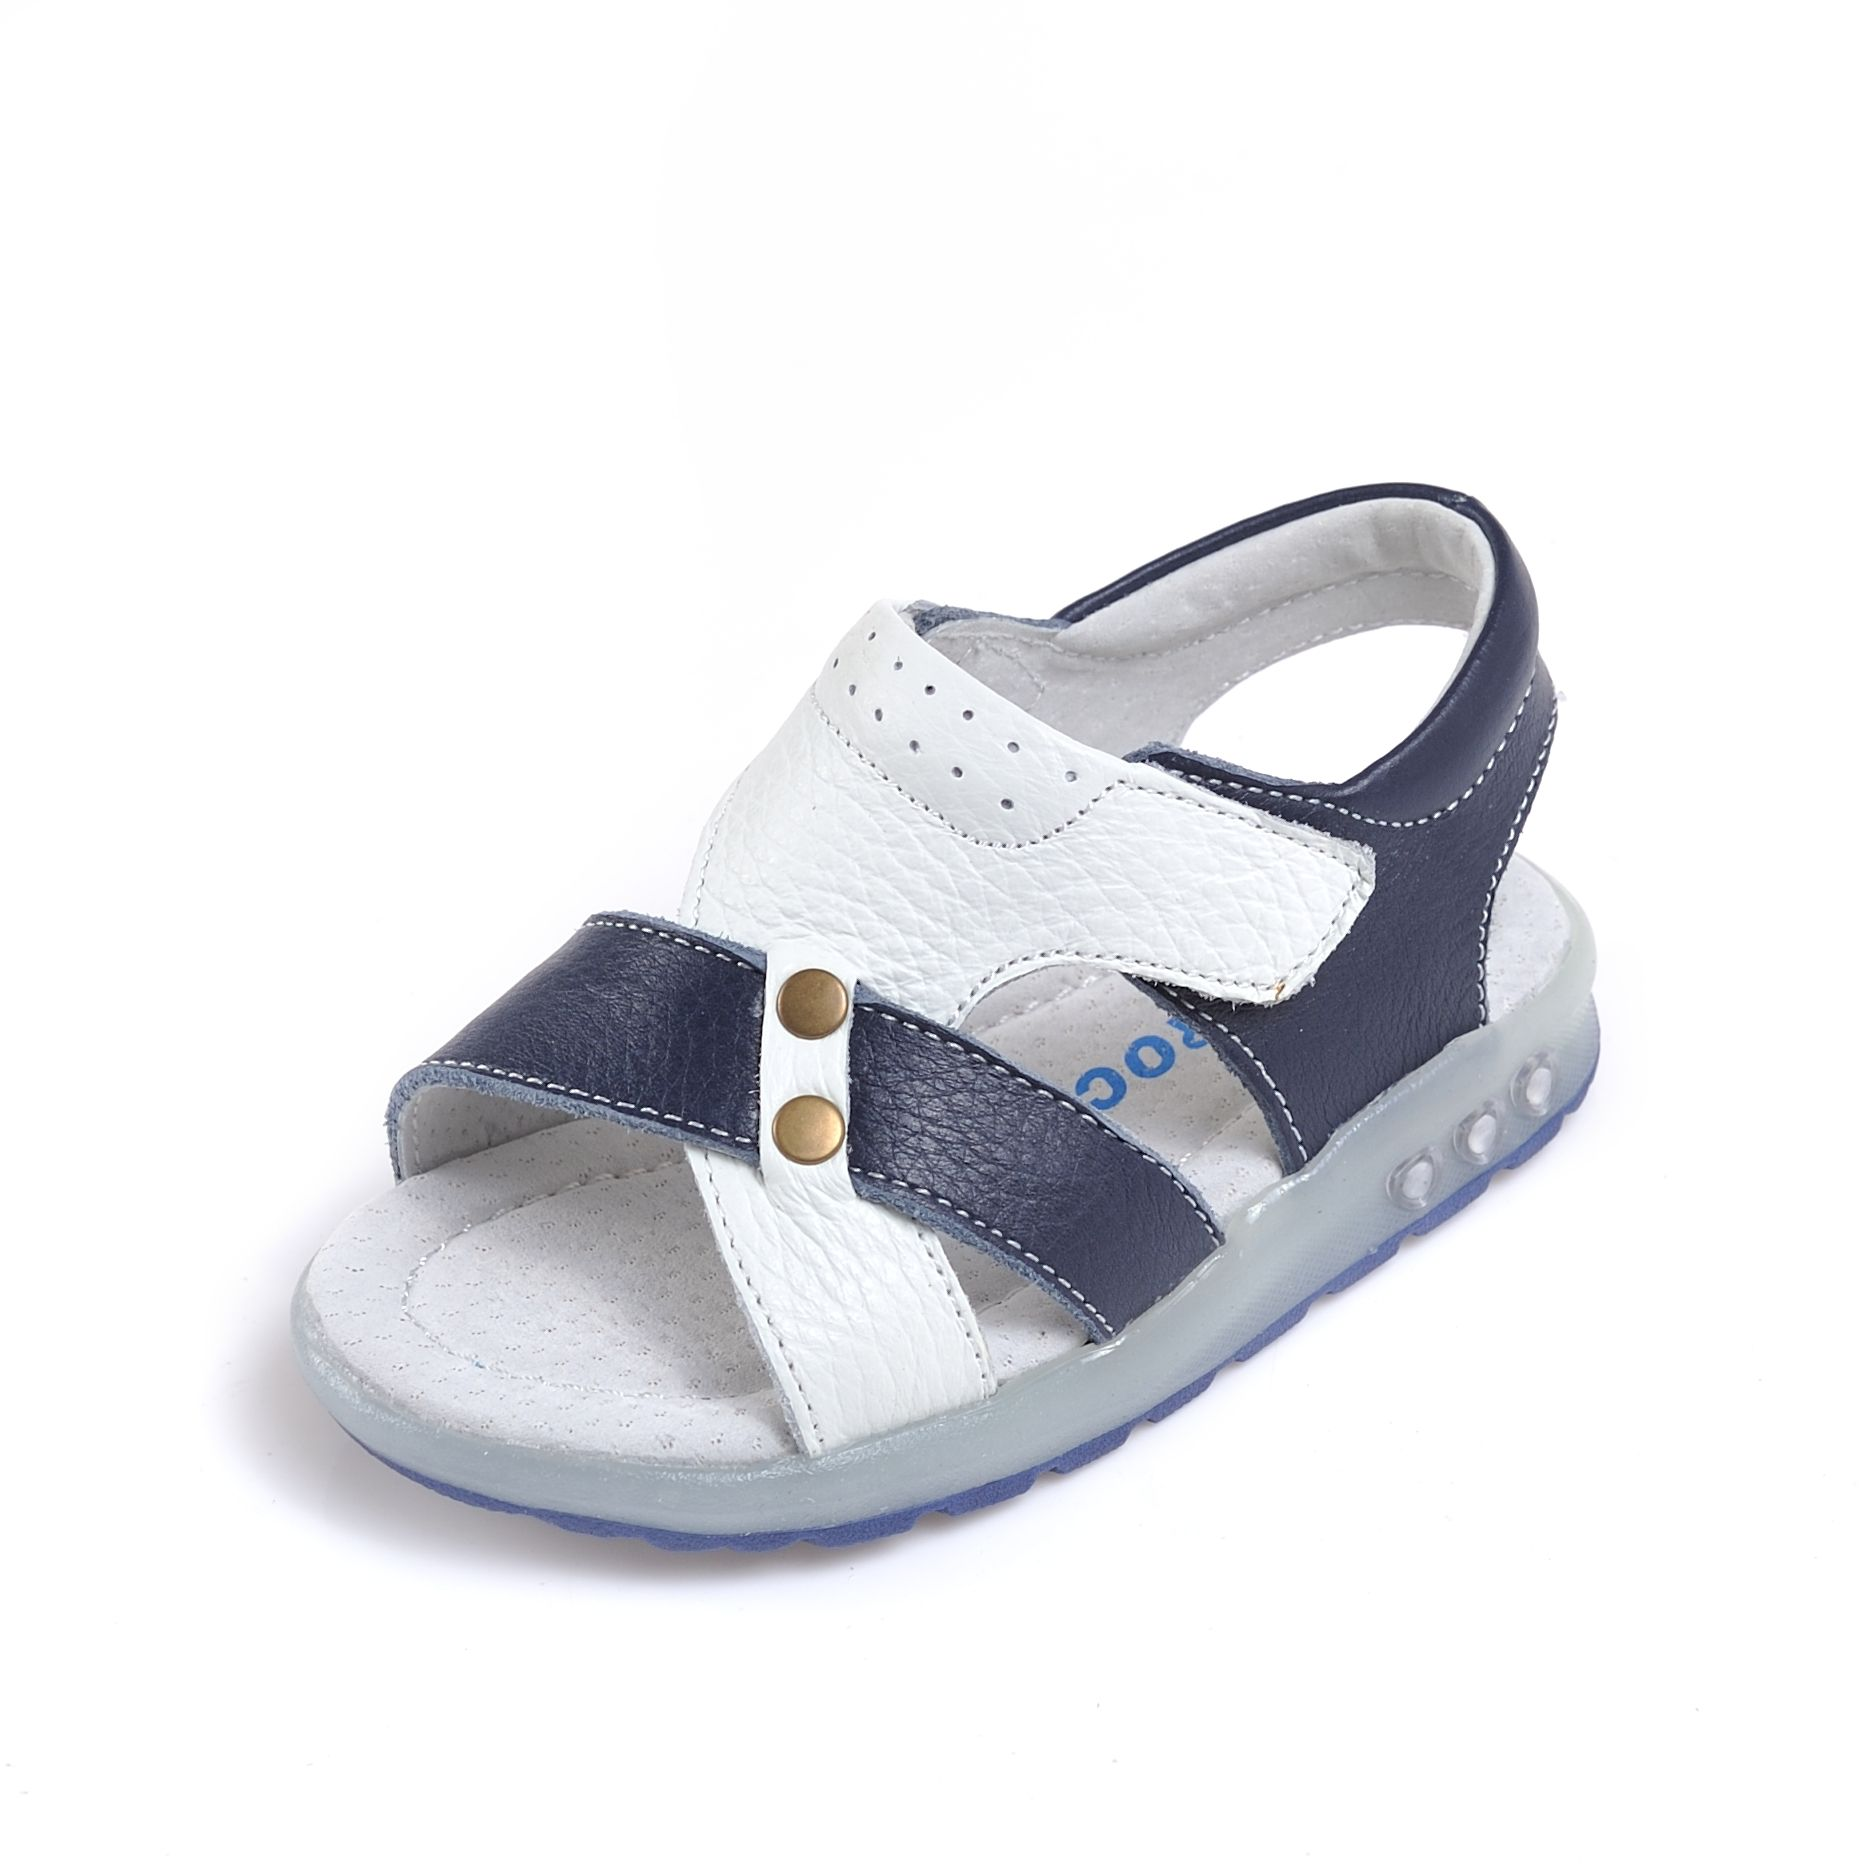 Cody boys navy and white leather sandals Caroch boys shoes